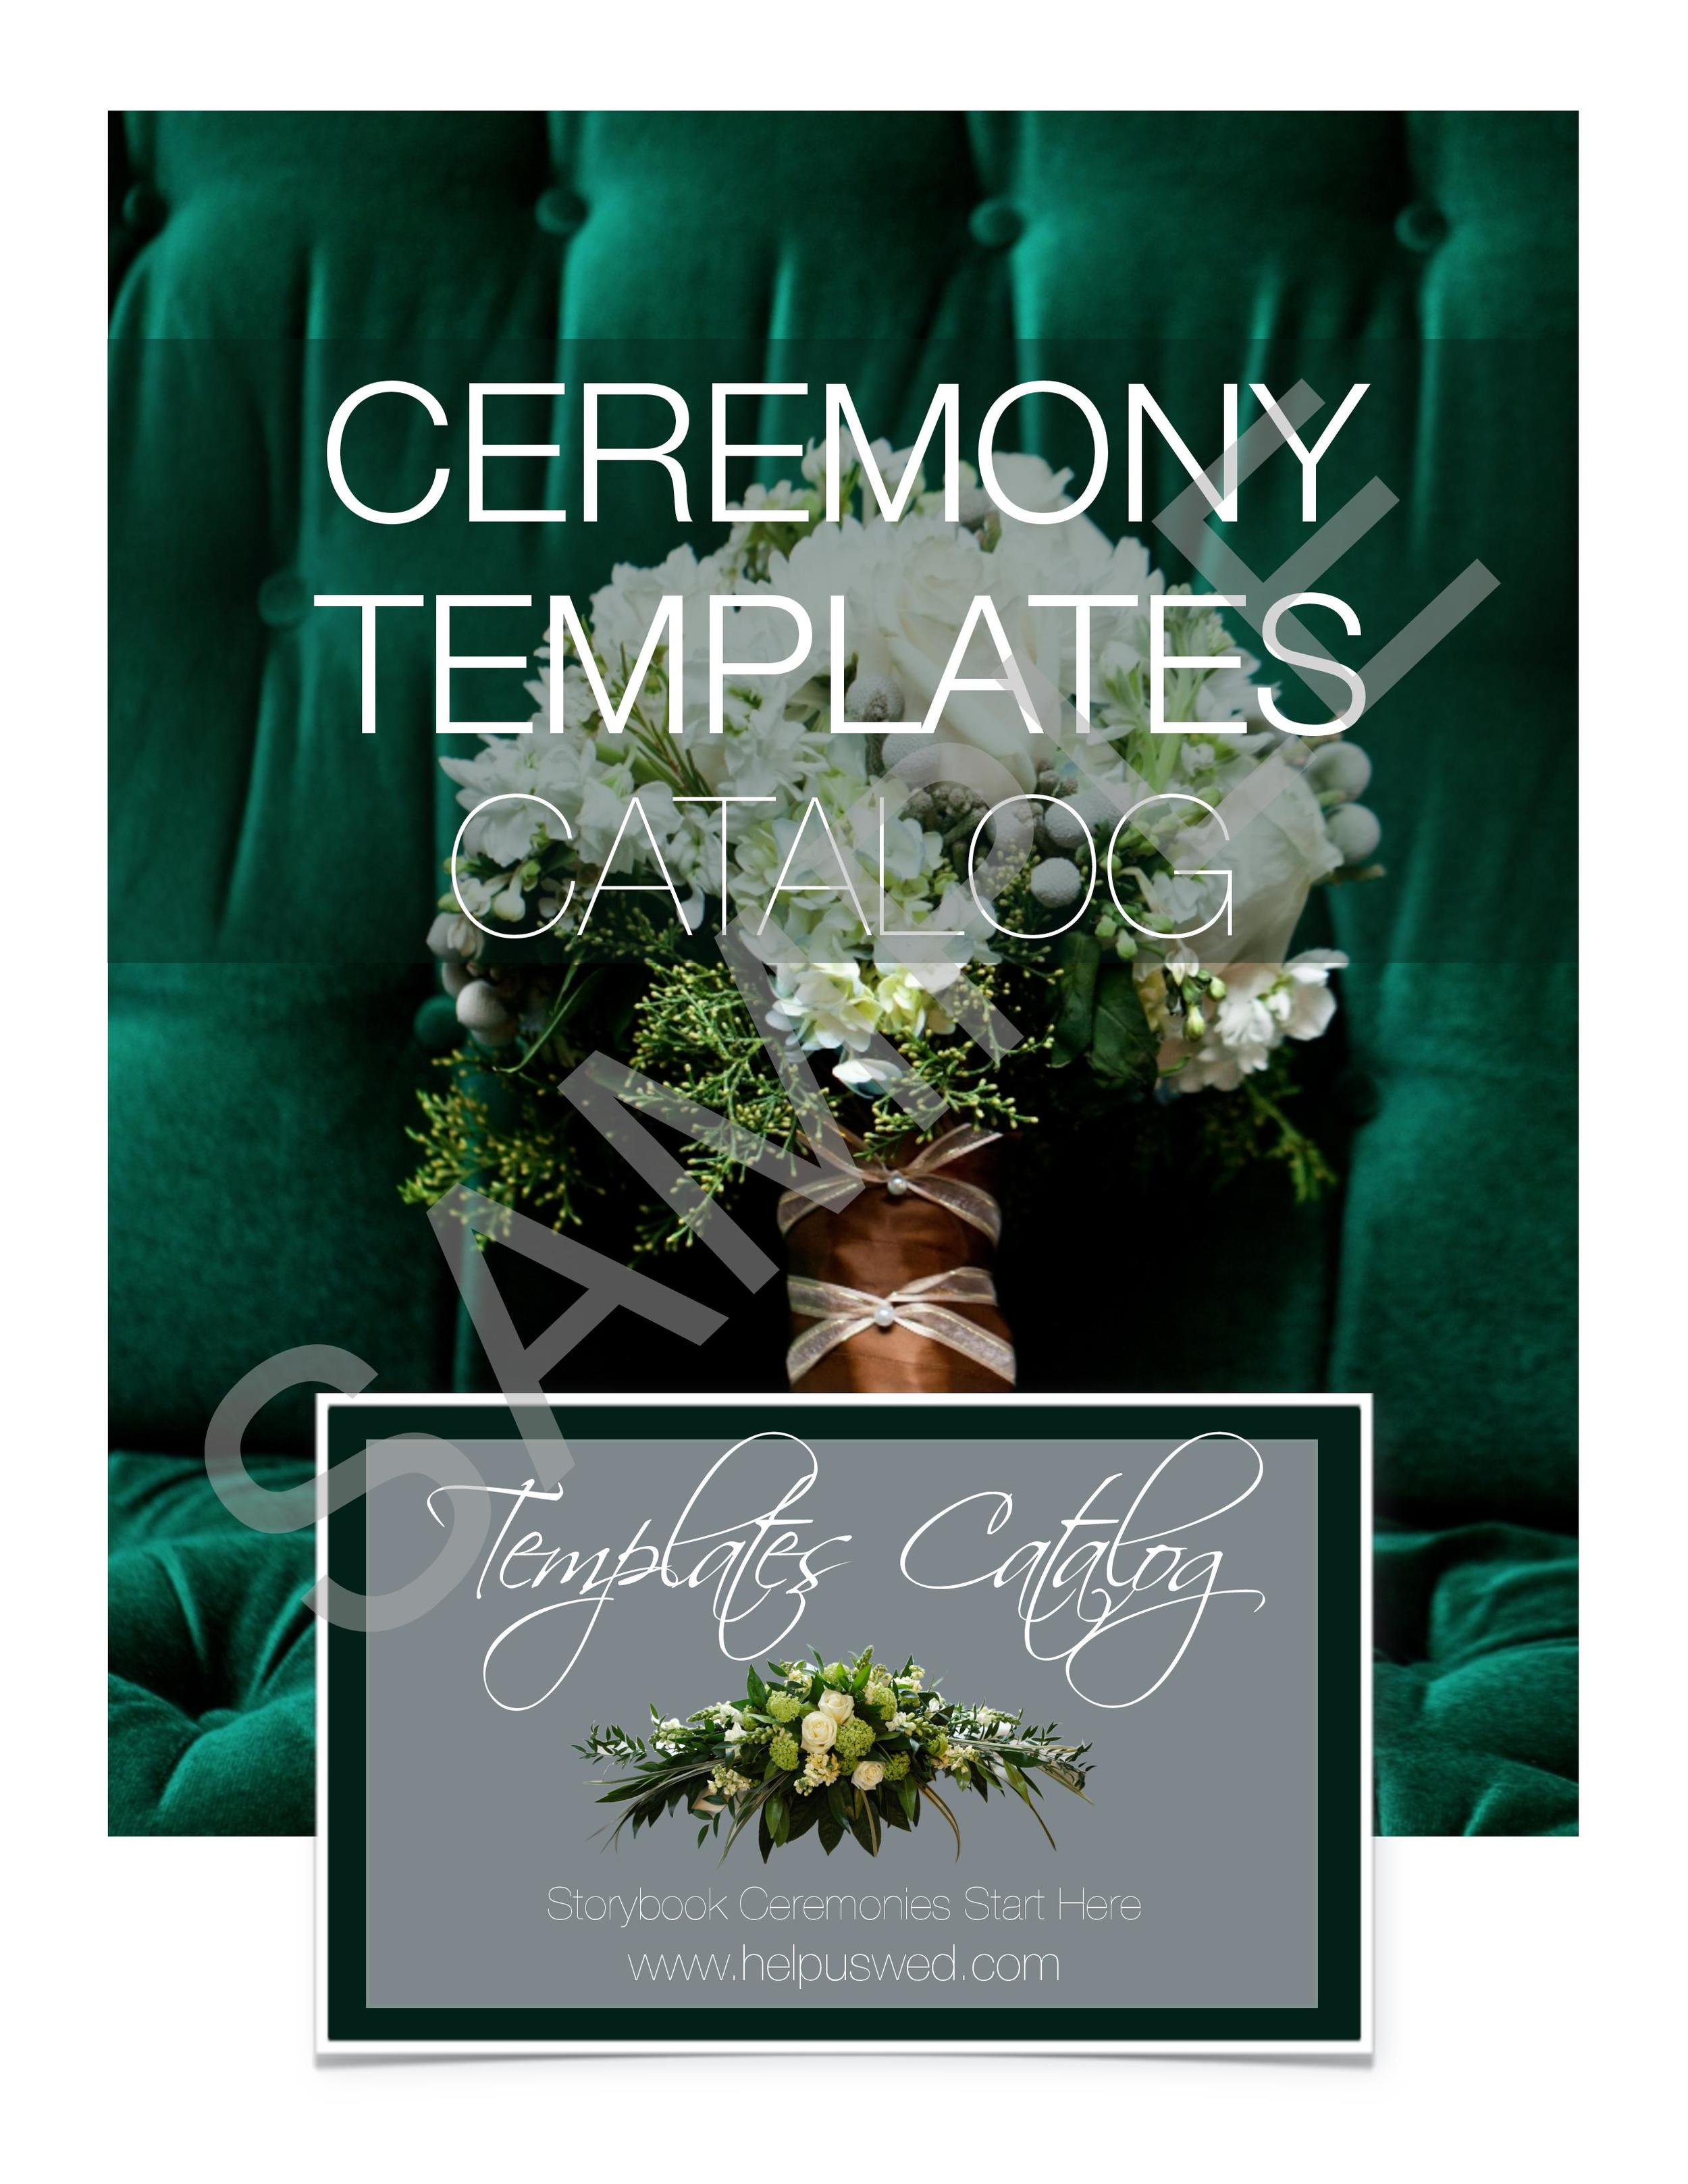 Ceremony Templates Sneak Peek-page-001.jpg